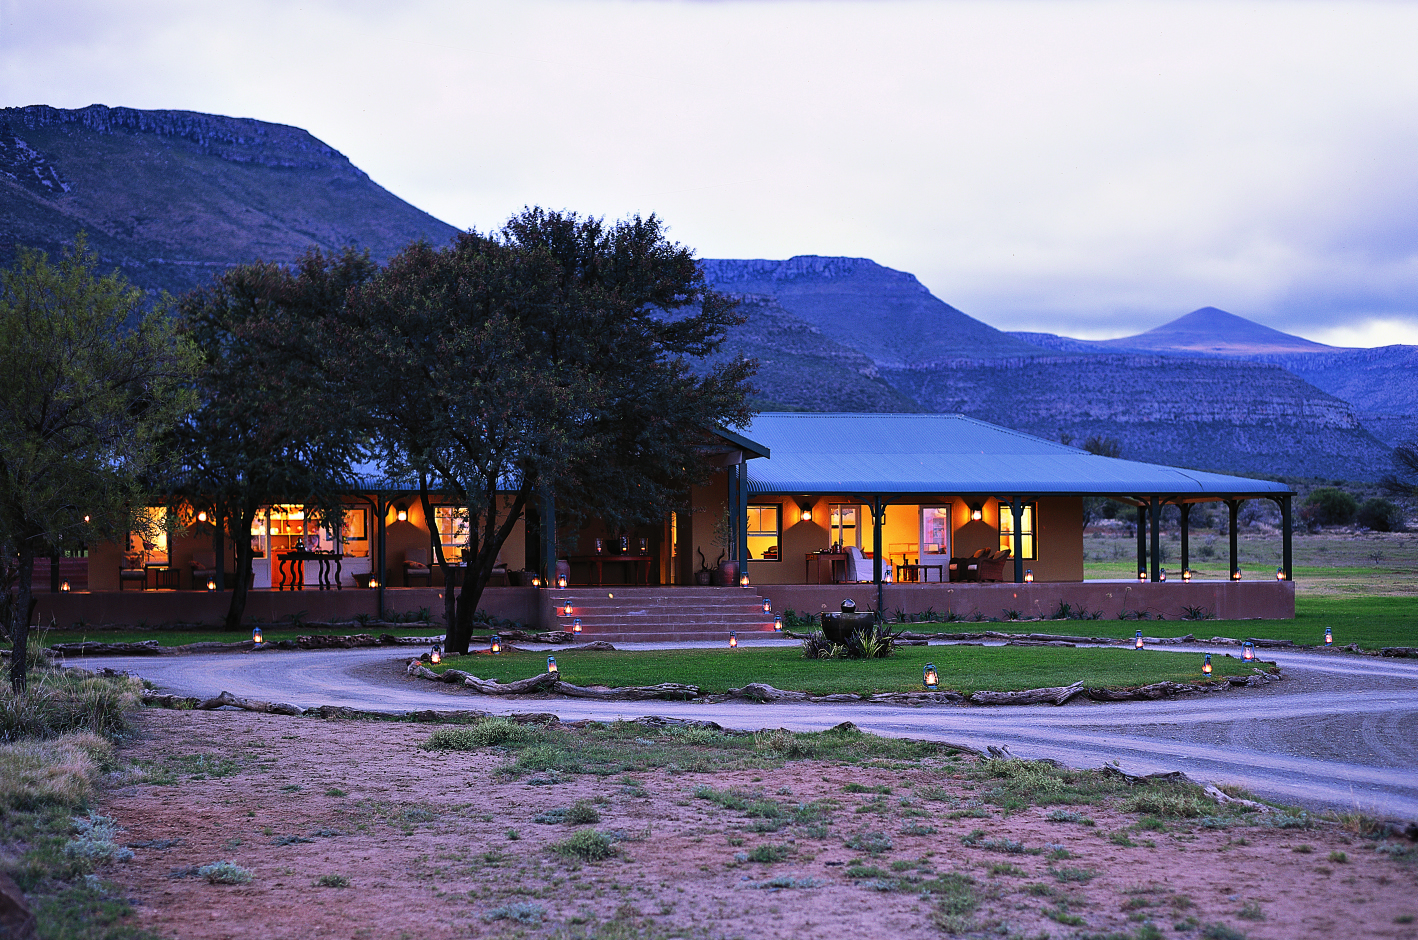 View of Karoo Lodge, South Africa